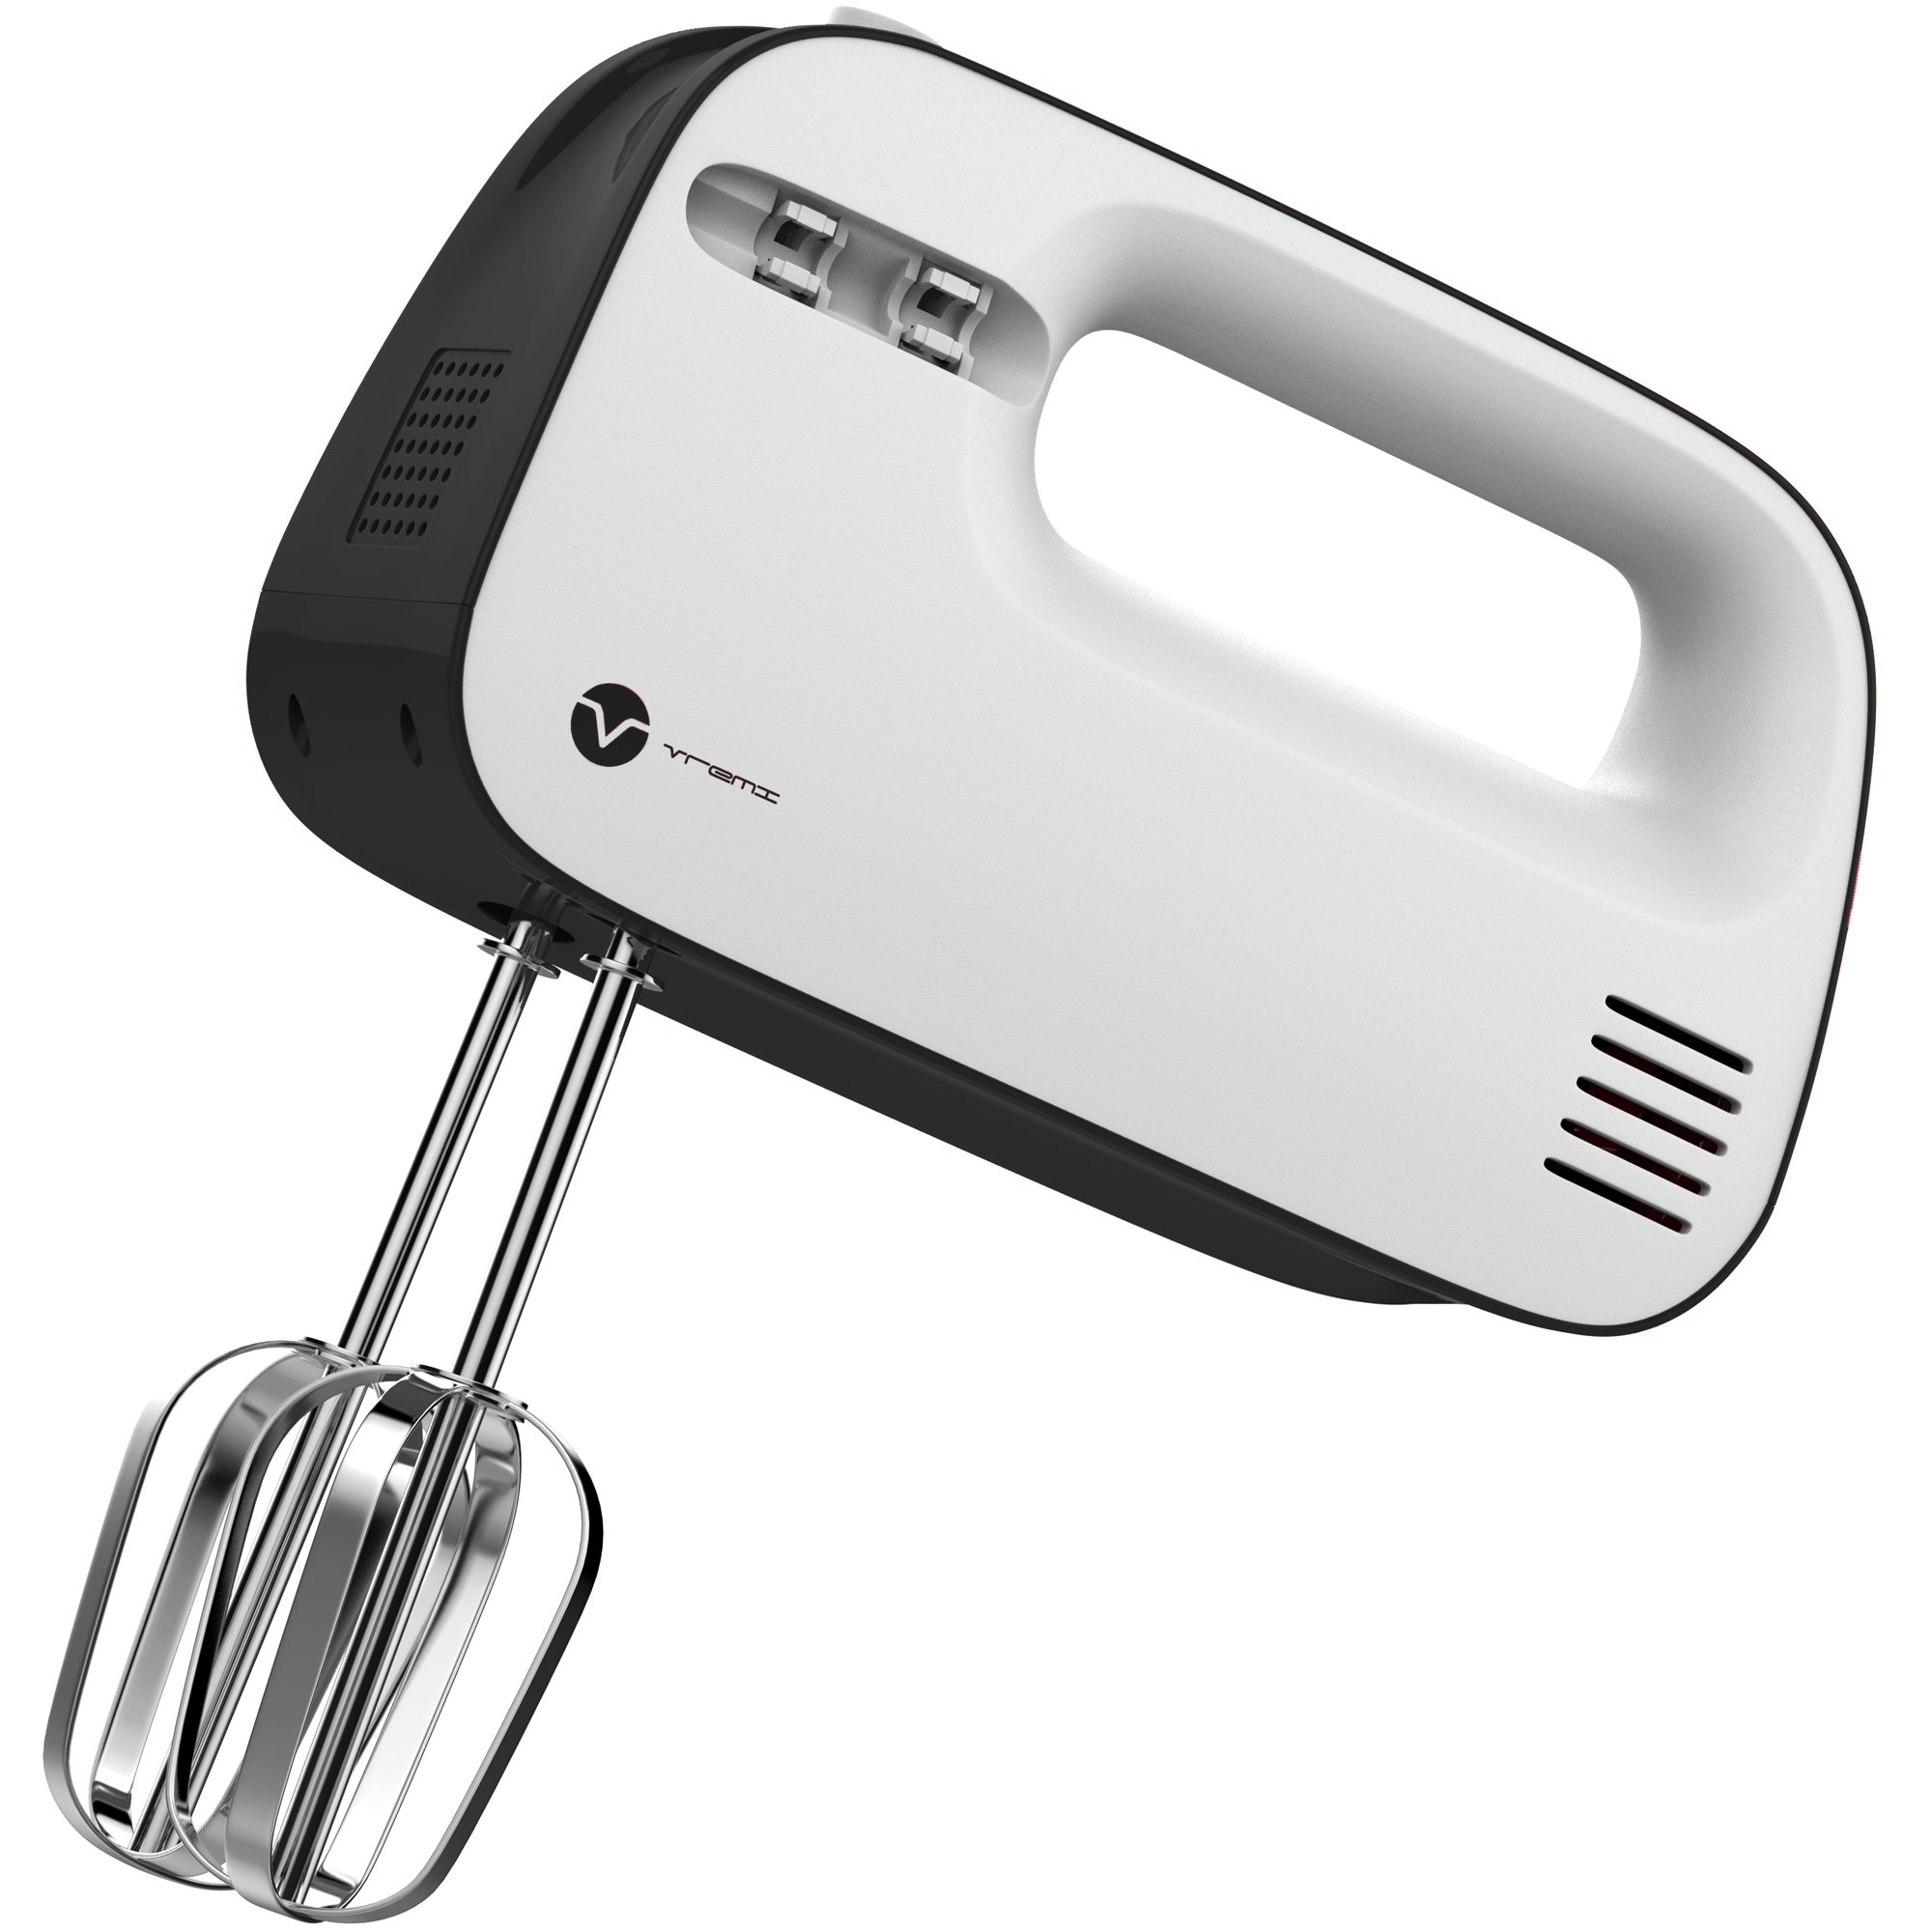 Vremi 3-Speed Compact Hand Mixer with Clever Built-In Beater Storage - Handheld Egg Beater with Stainless Steel Blades - Heavy Duty Mini Small Kitchen Mixing Machine - Black and White by Vremi